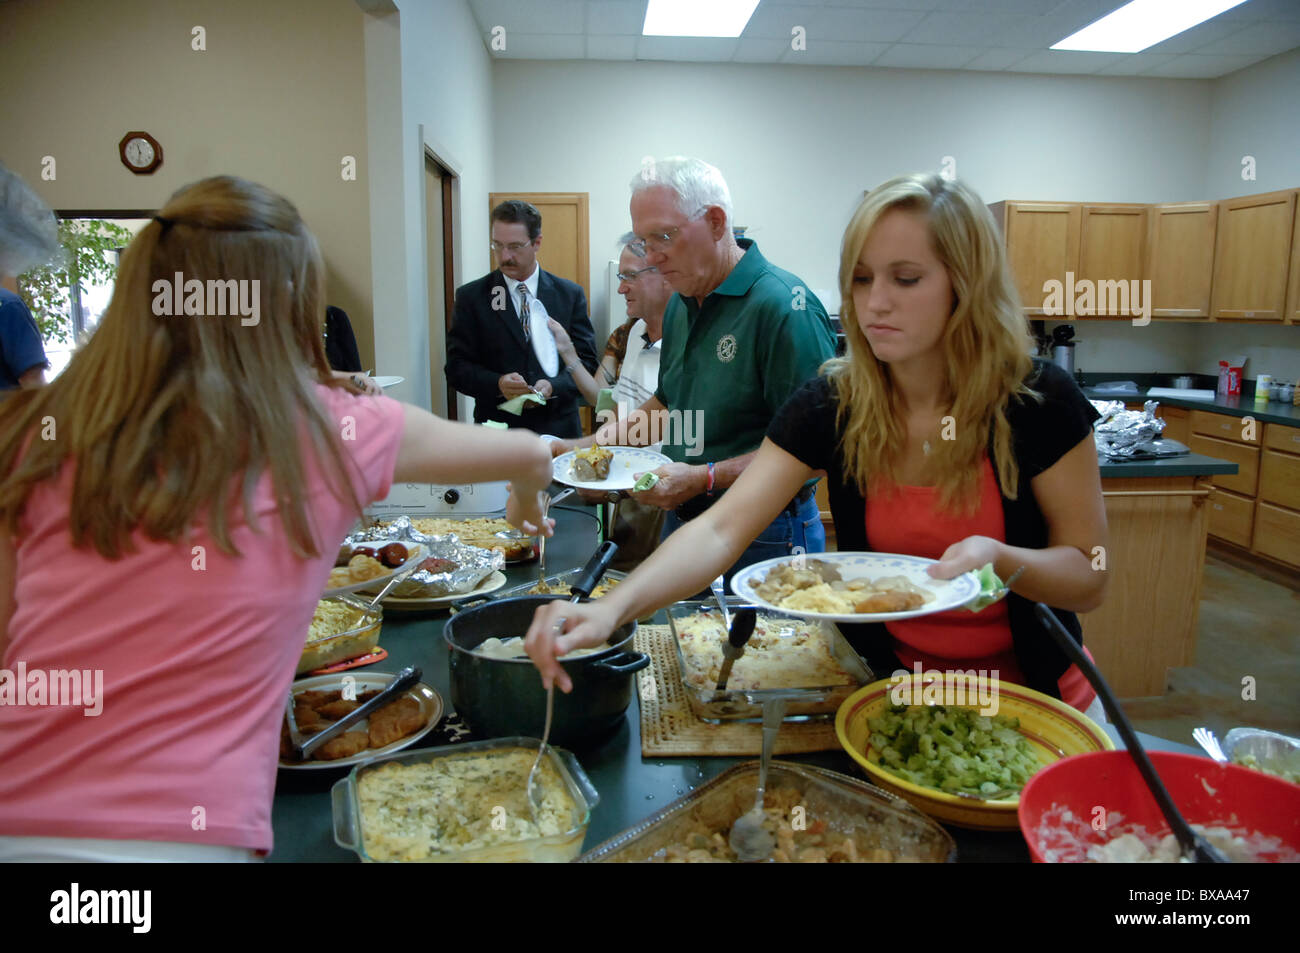 Congregation members serve themselves during potluck buffet luncheon at their church in Burnet, Texas, USA - Stock Image